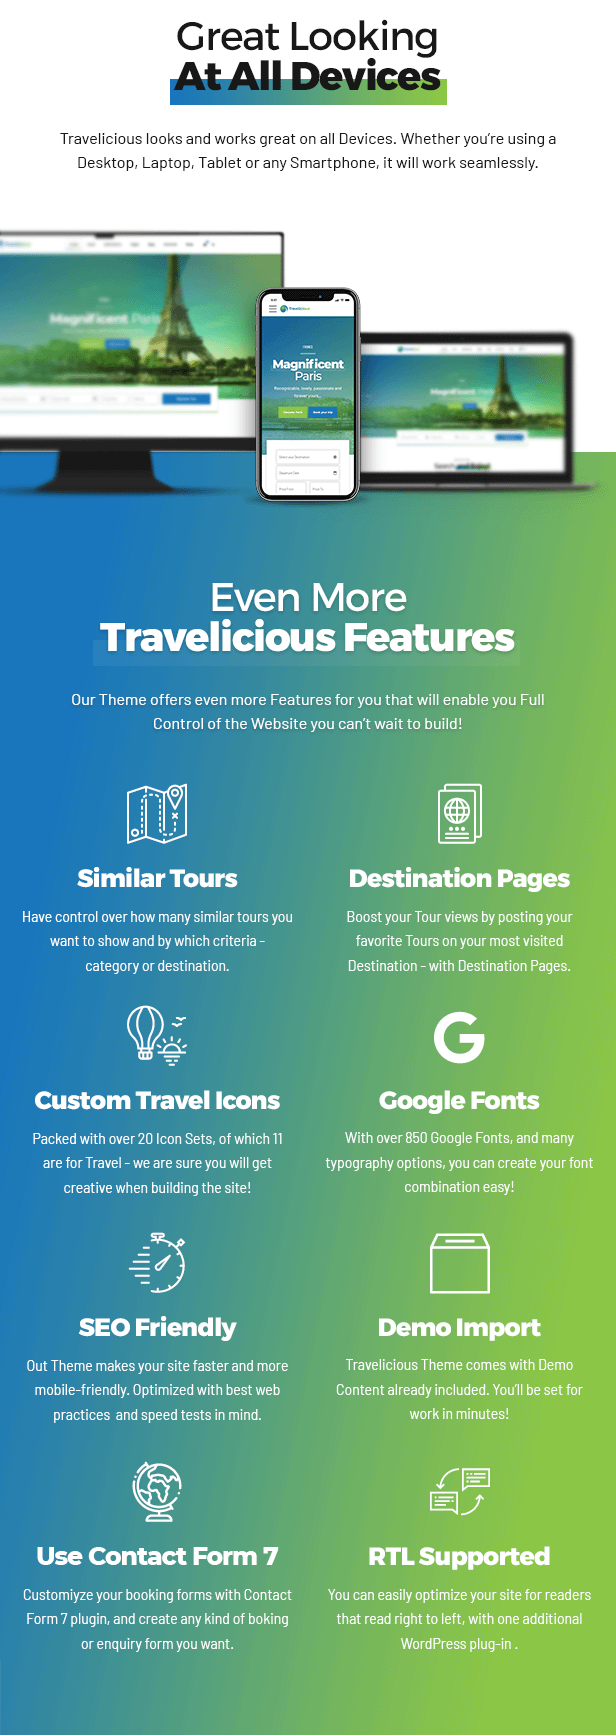 Travelicious - Tour Operator Theme - 9